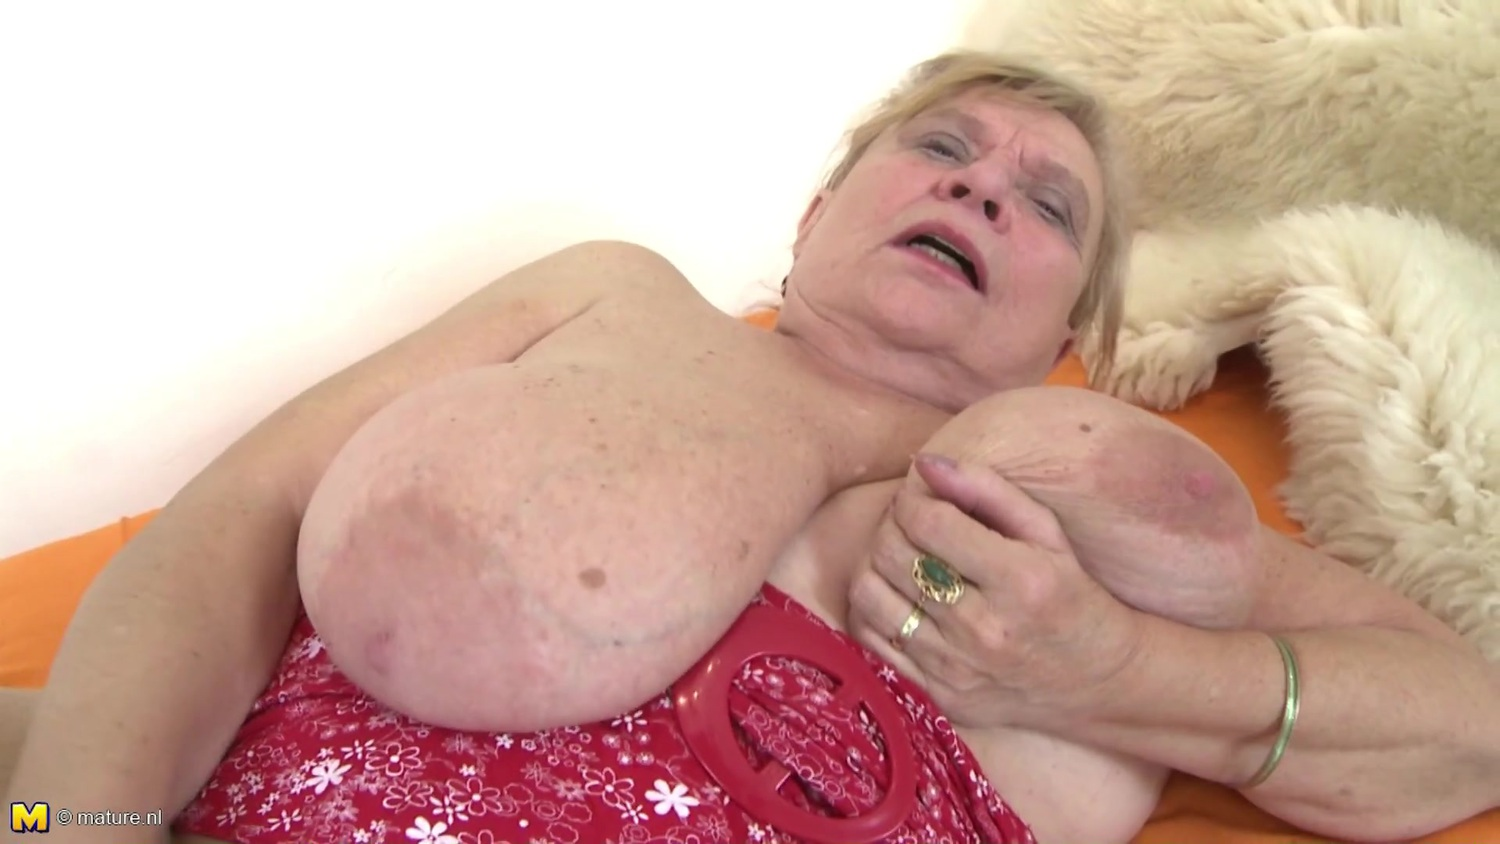 fucking-oldest-grannies-pussy-videos-daughter-was